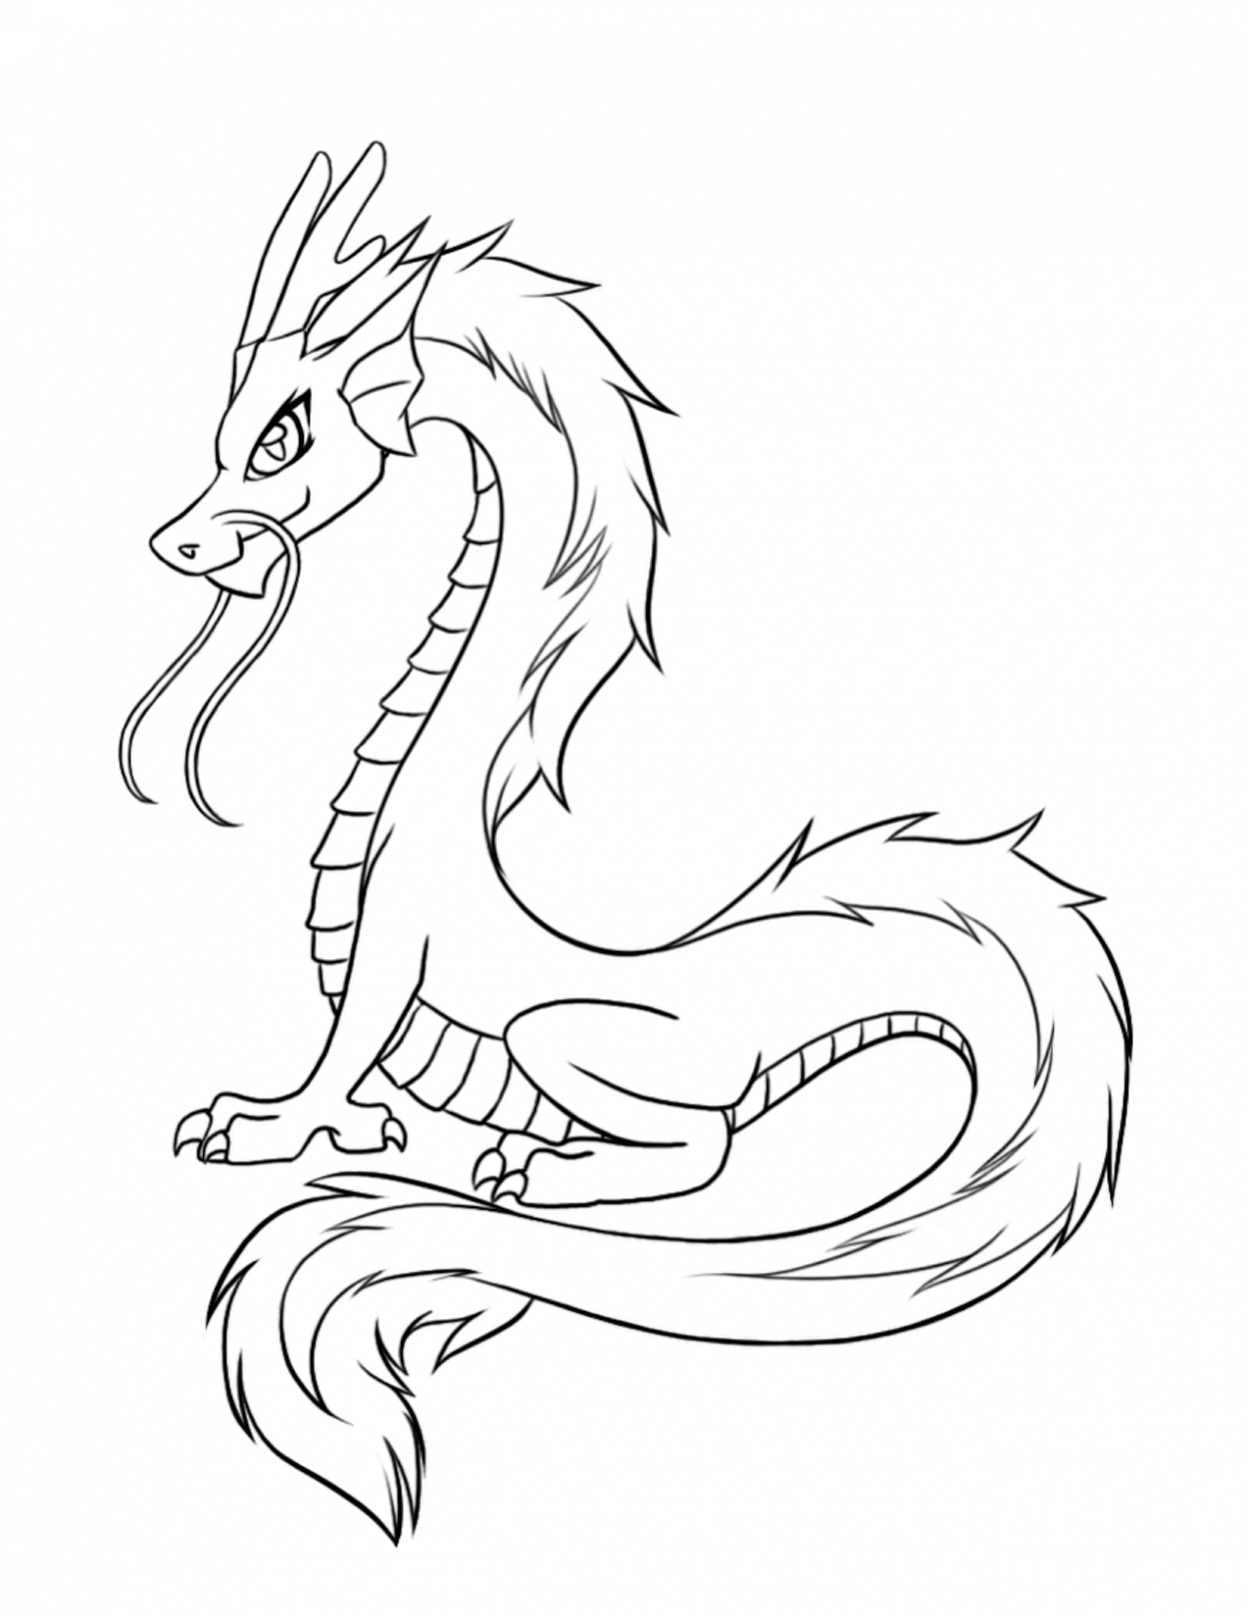 chinesse dragon coloring pages - photo#11